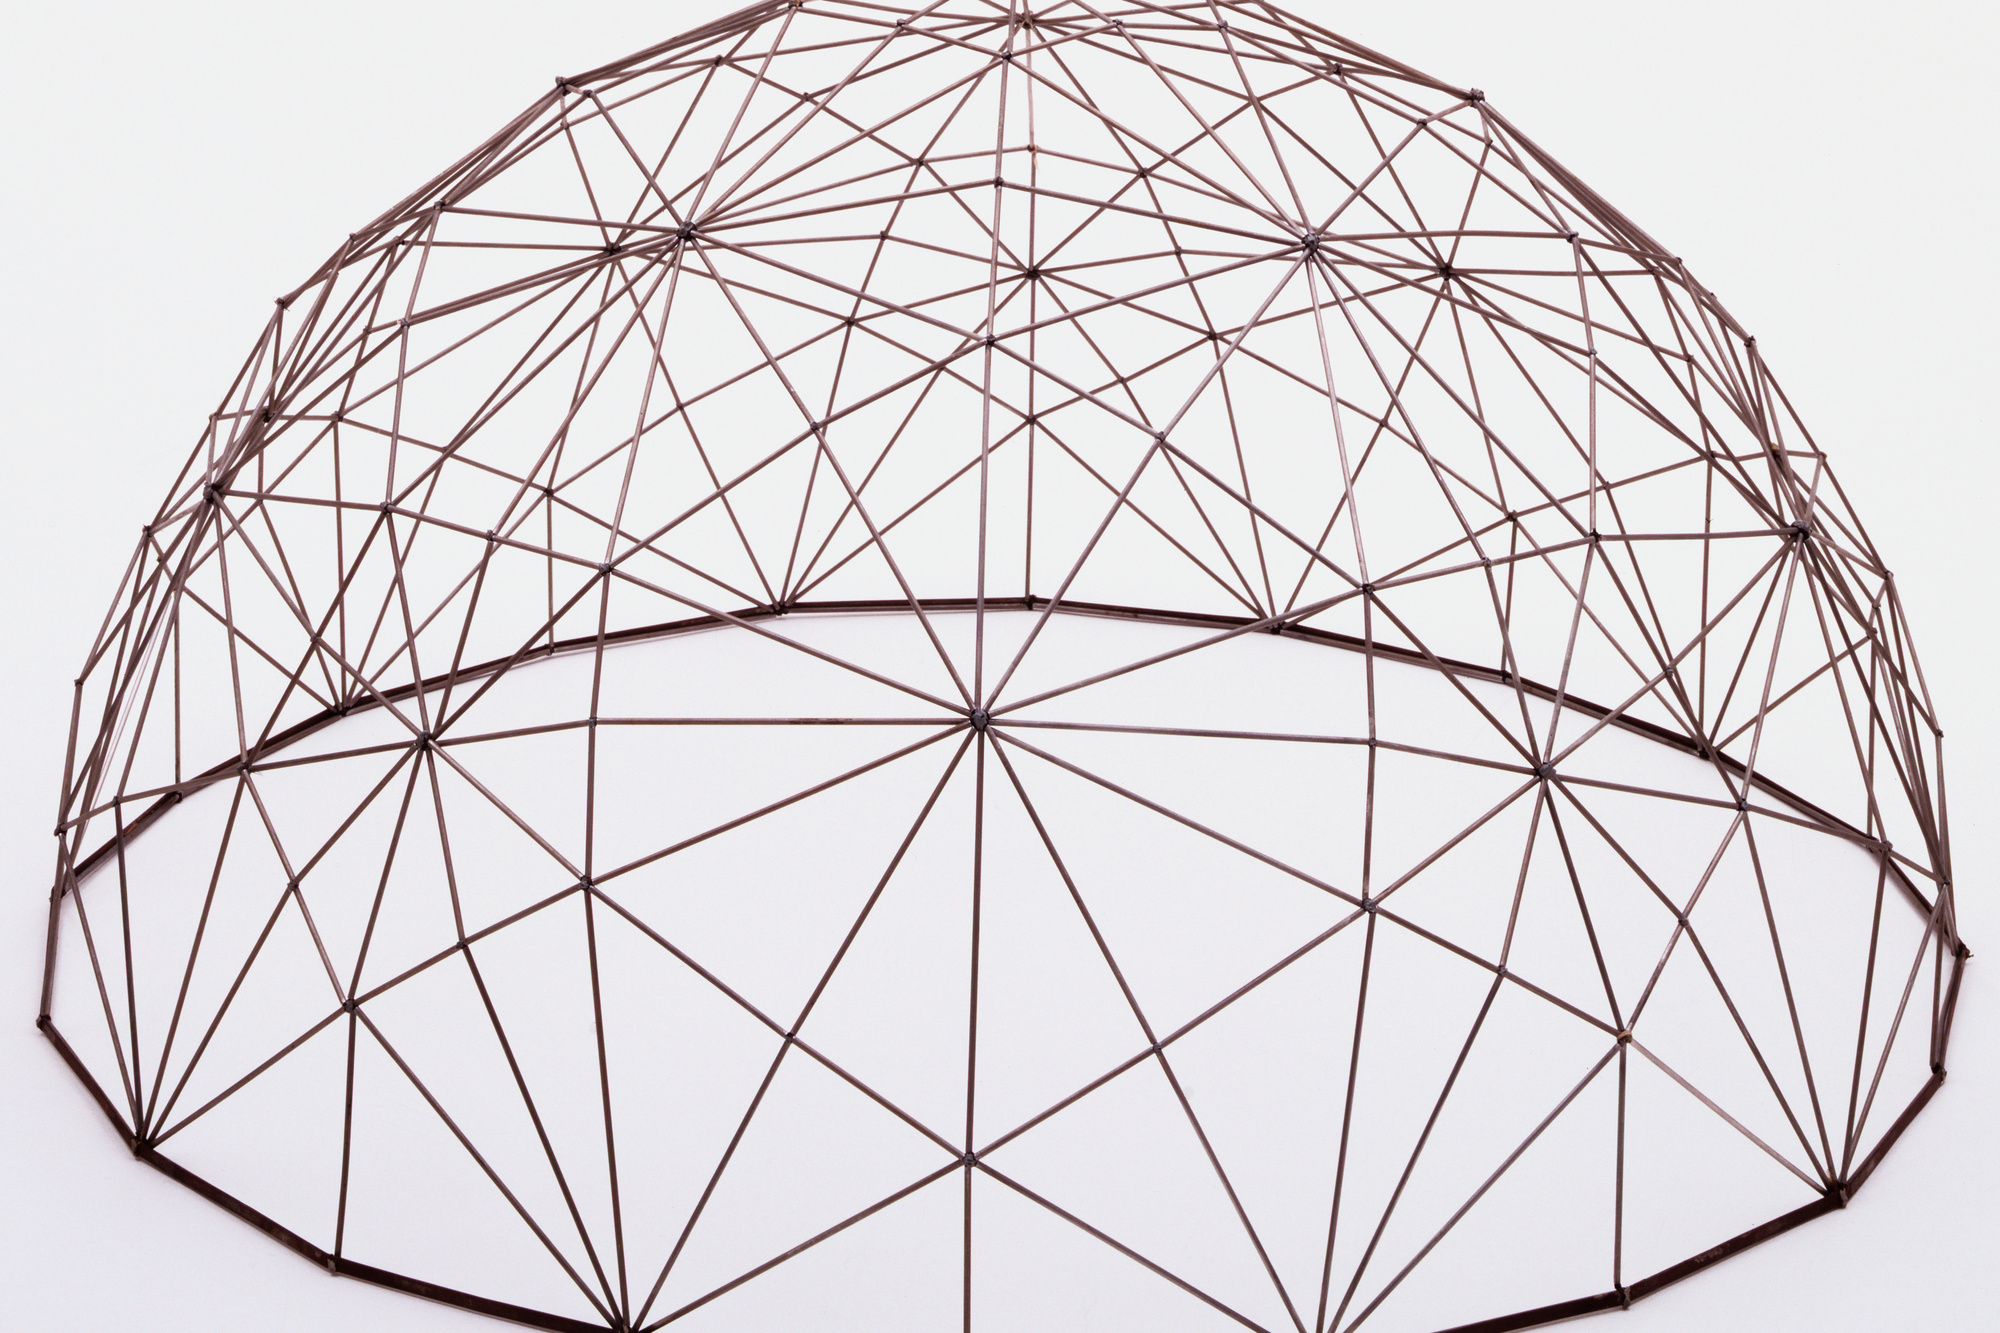 "R. Buckminster Fuller. Geodesic Dome. 1952. Elastic cord and metal, h. 20 1/4"" (51.4 cm), diam. 39"" (99.1 cm). Model maker: Alan Borg, Joan Forrester, Ron Goodfellow, John Hampshire, T. C. Howard, Fred Taylor. Gift of the architect"